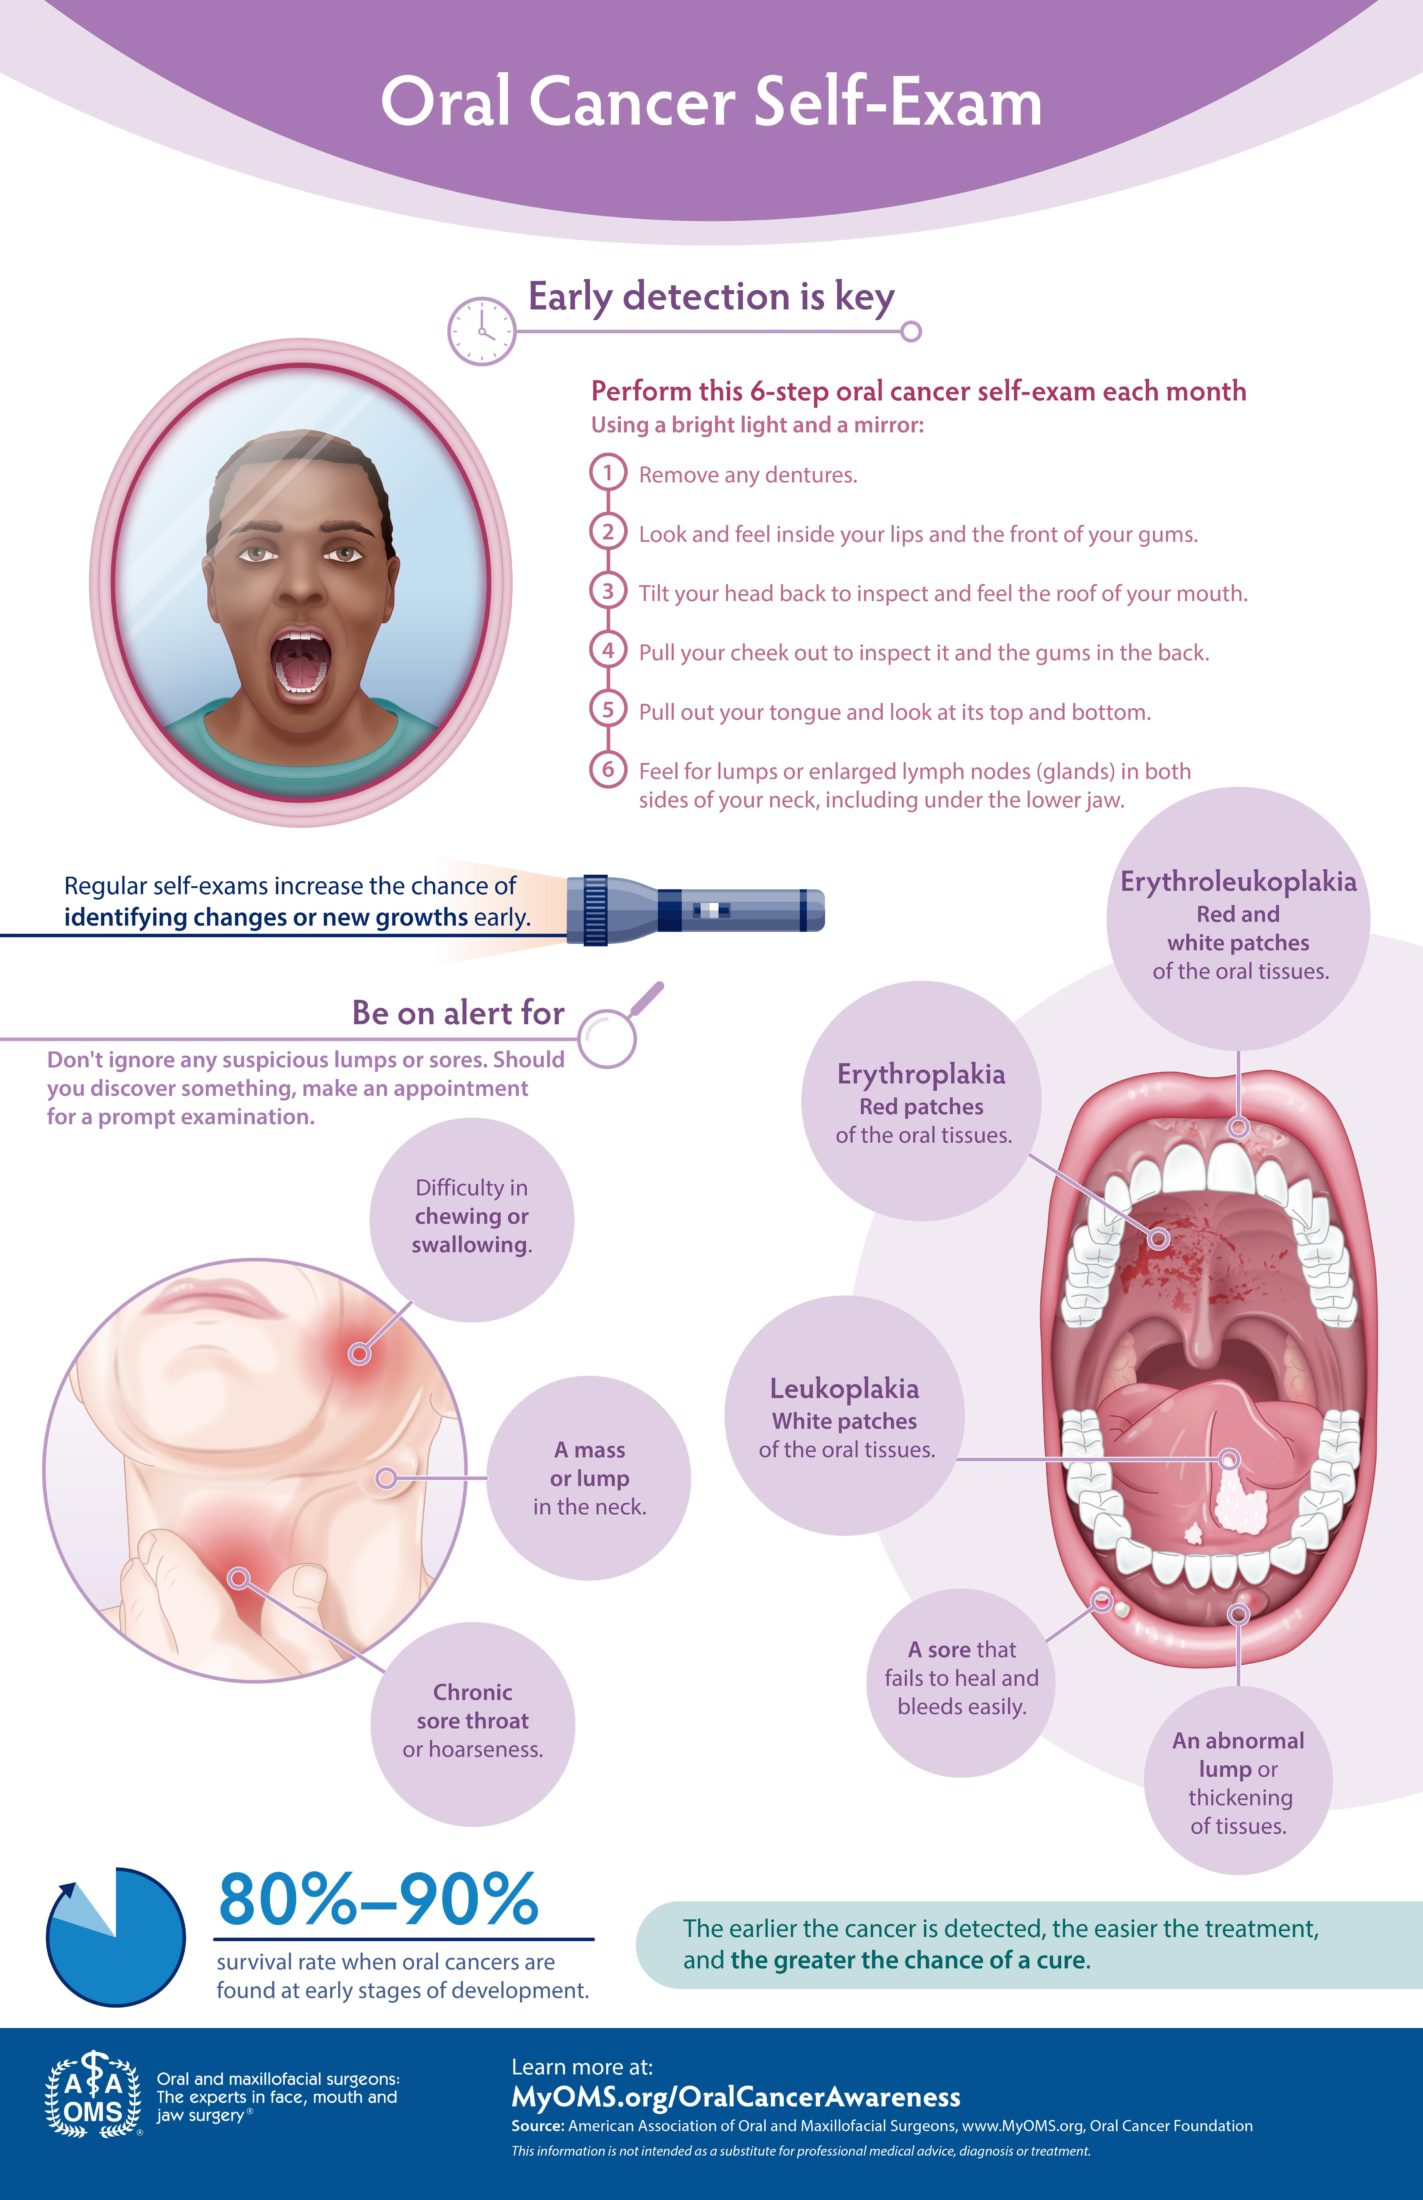 Oral Cancer Self-exam Infographic